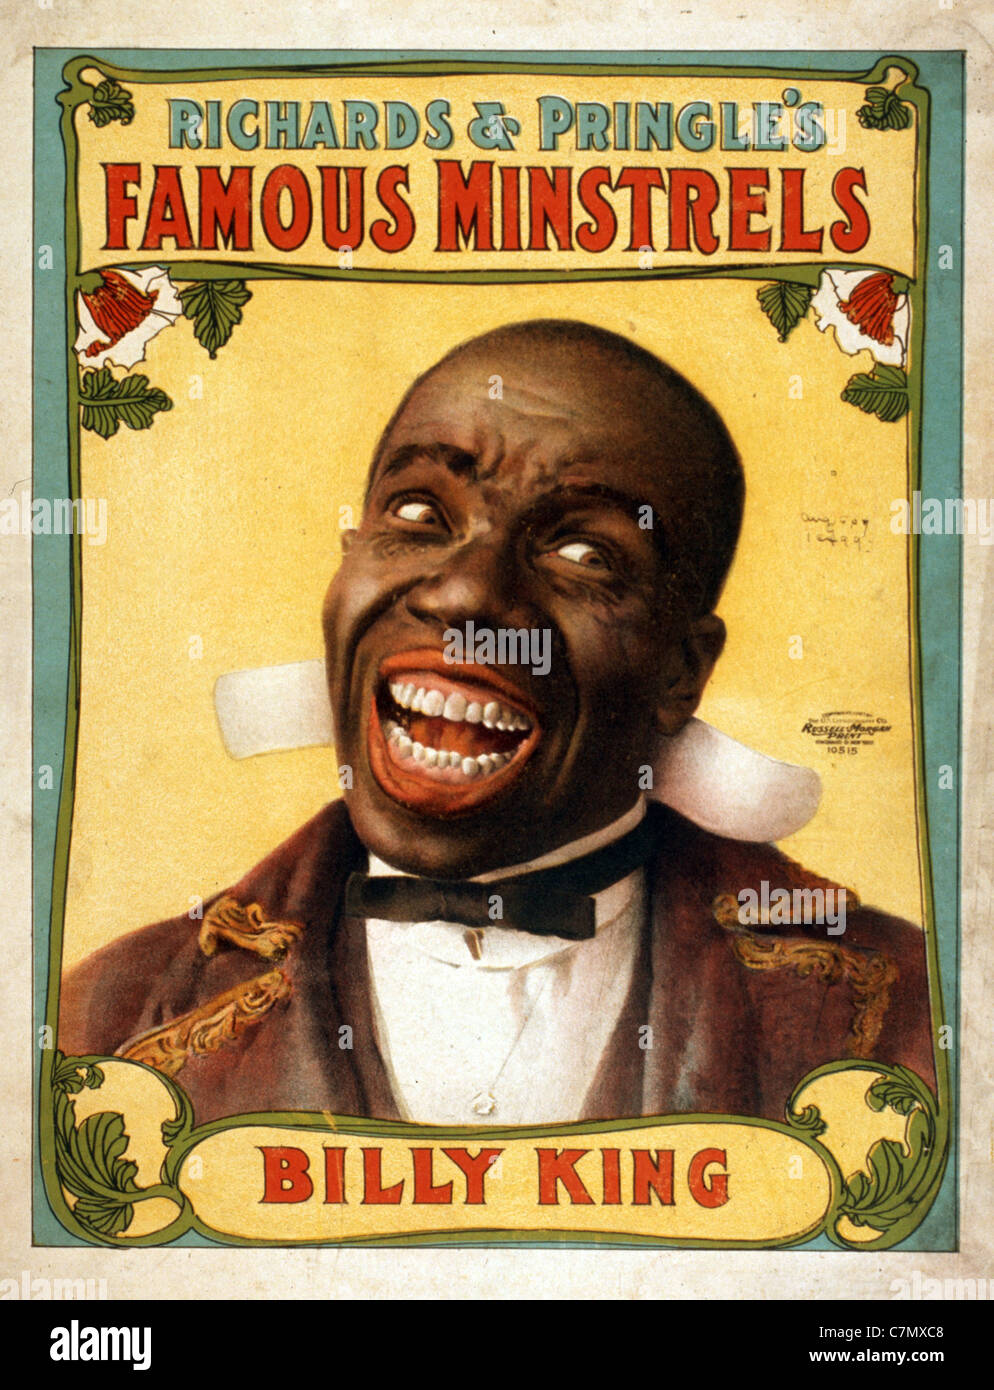 Richards & Pringle's Minstrels célèbre Photo Stock